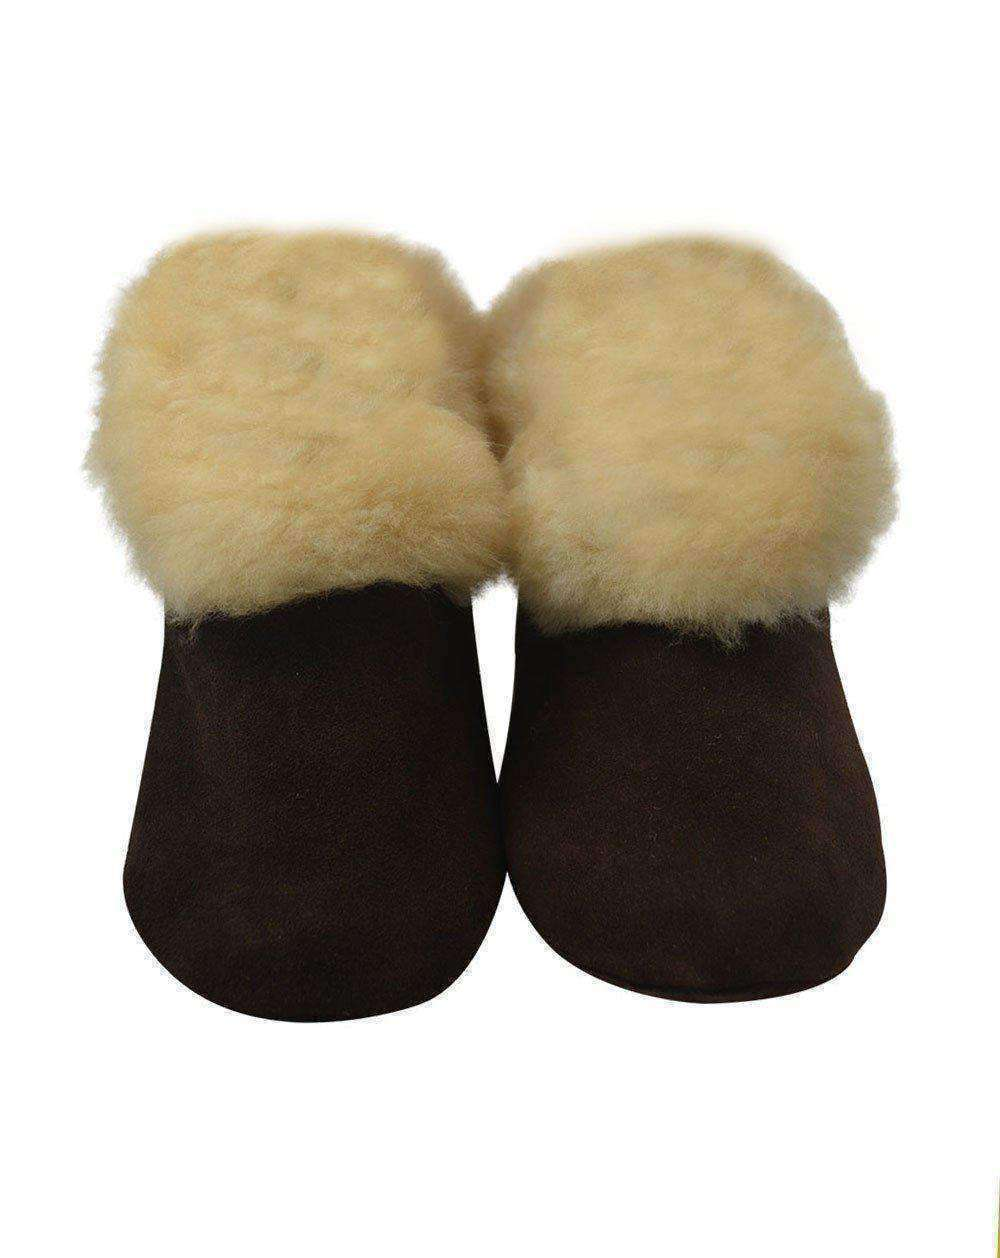 Alpaca Leather Bootie Slippers with Fur Lining - Dark Chocolate Suede